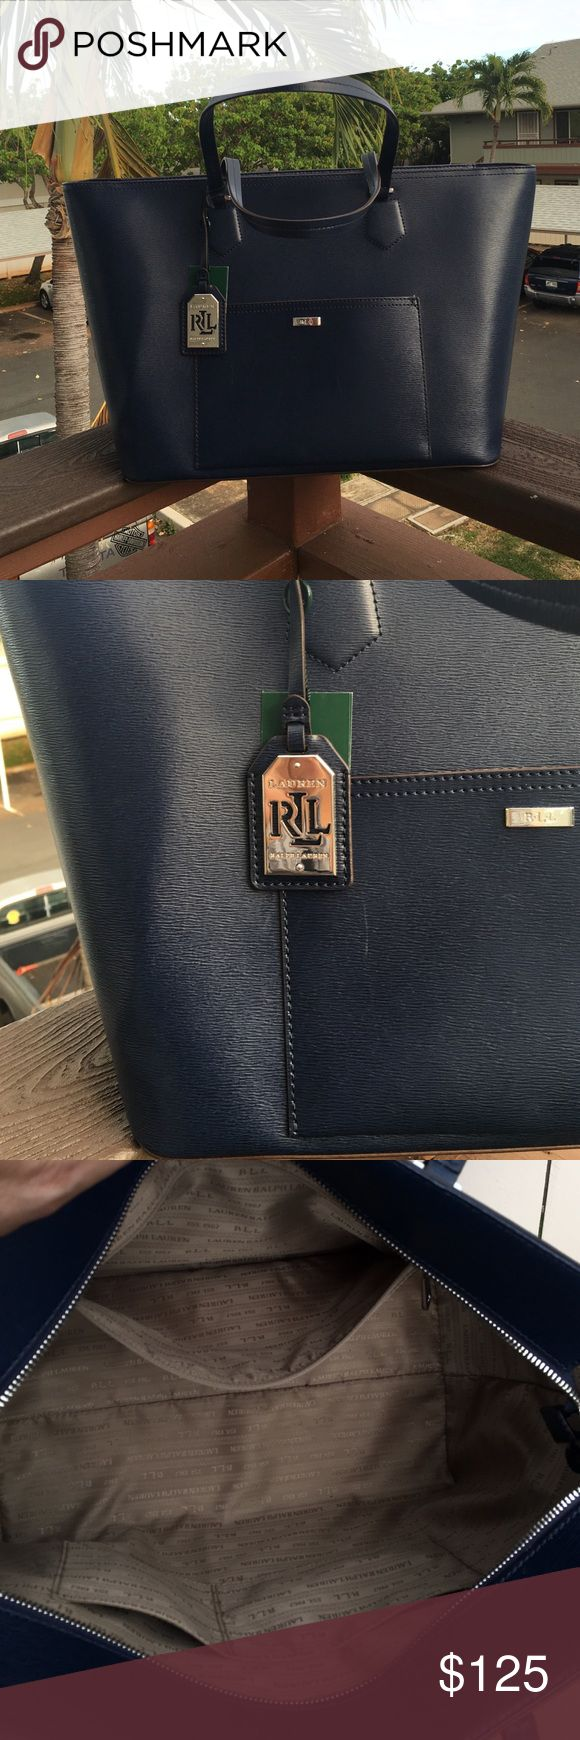 Ralph Lauren tote bag New with tag rich navy blues Ralph Lauren tote bag.  This bag features an exterior pocket and two interior pockets with a zipper pocket. Light scuffing see 2nd picture but hardly noticeable. Ralph Lauren Bags Totes